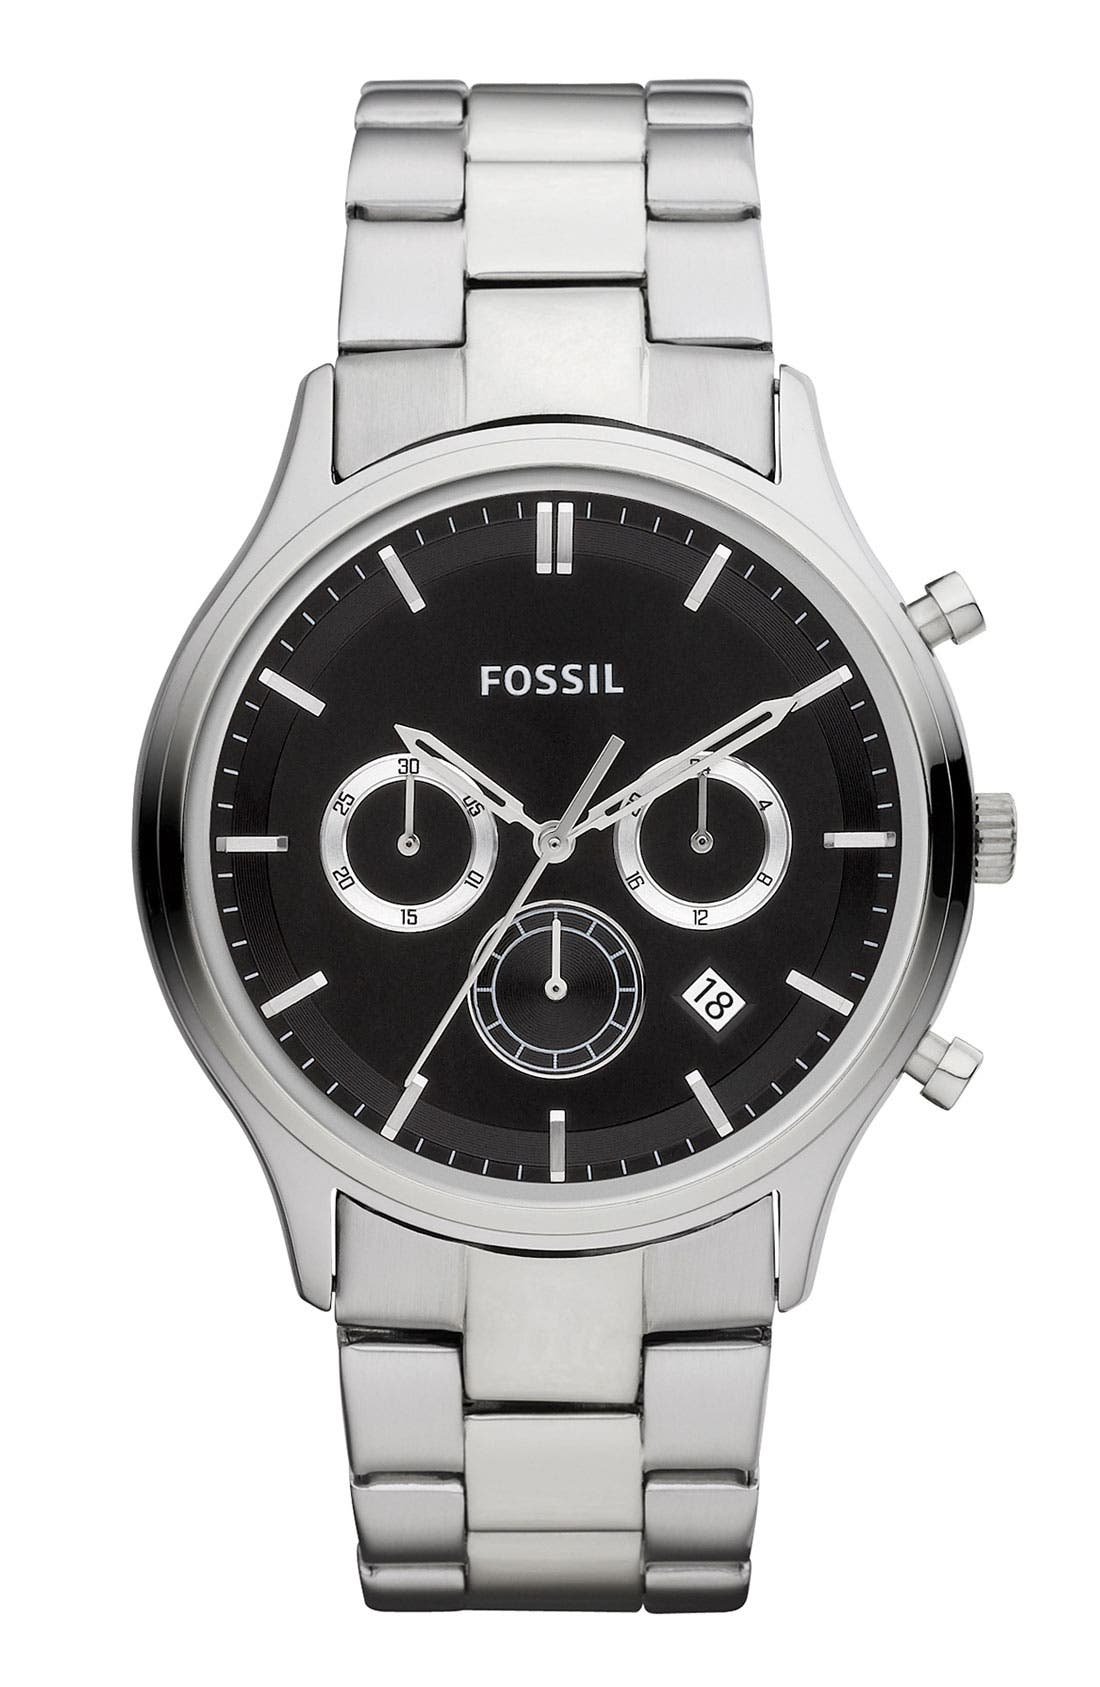 Main Image - Fossil 'Ansel' Chronograph Bracelet Watch, 41mm